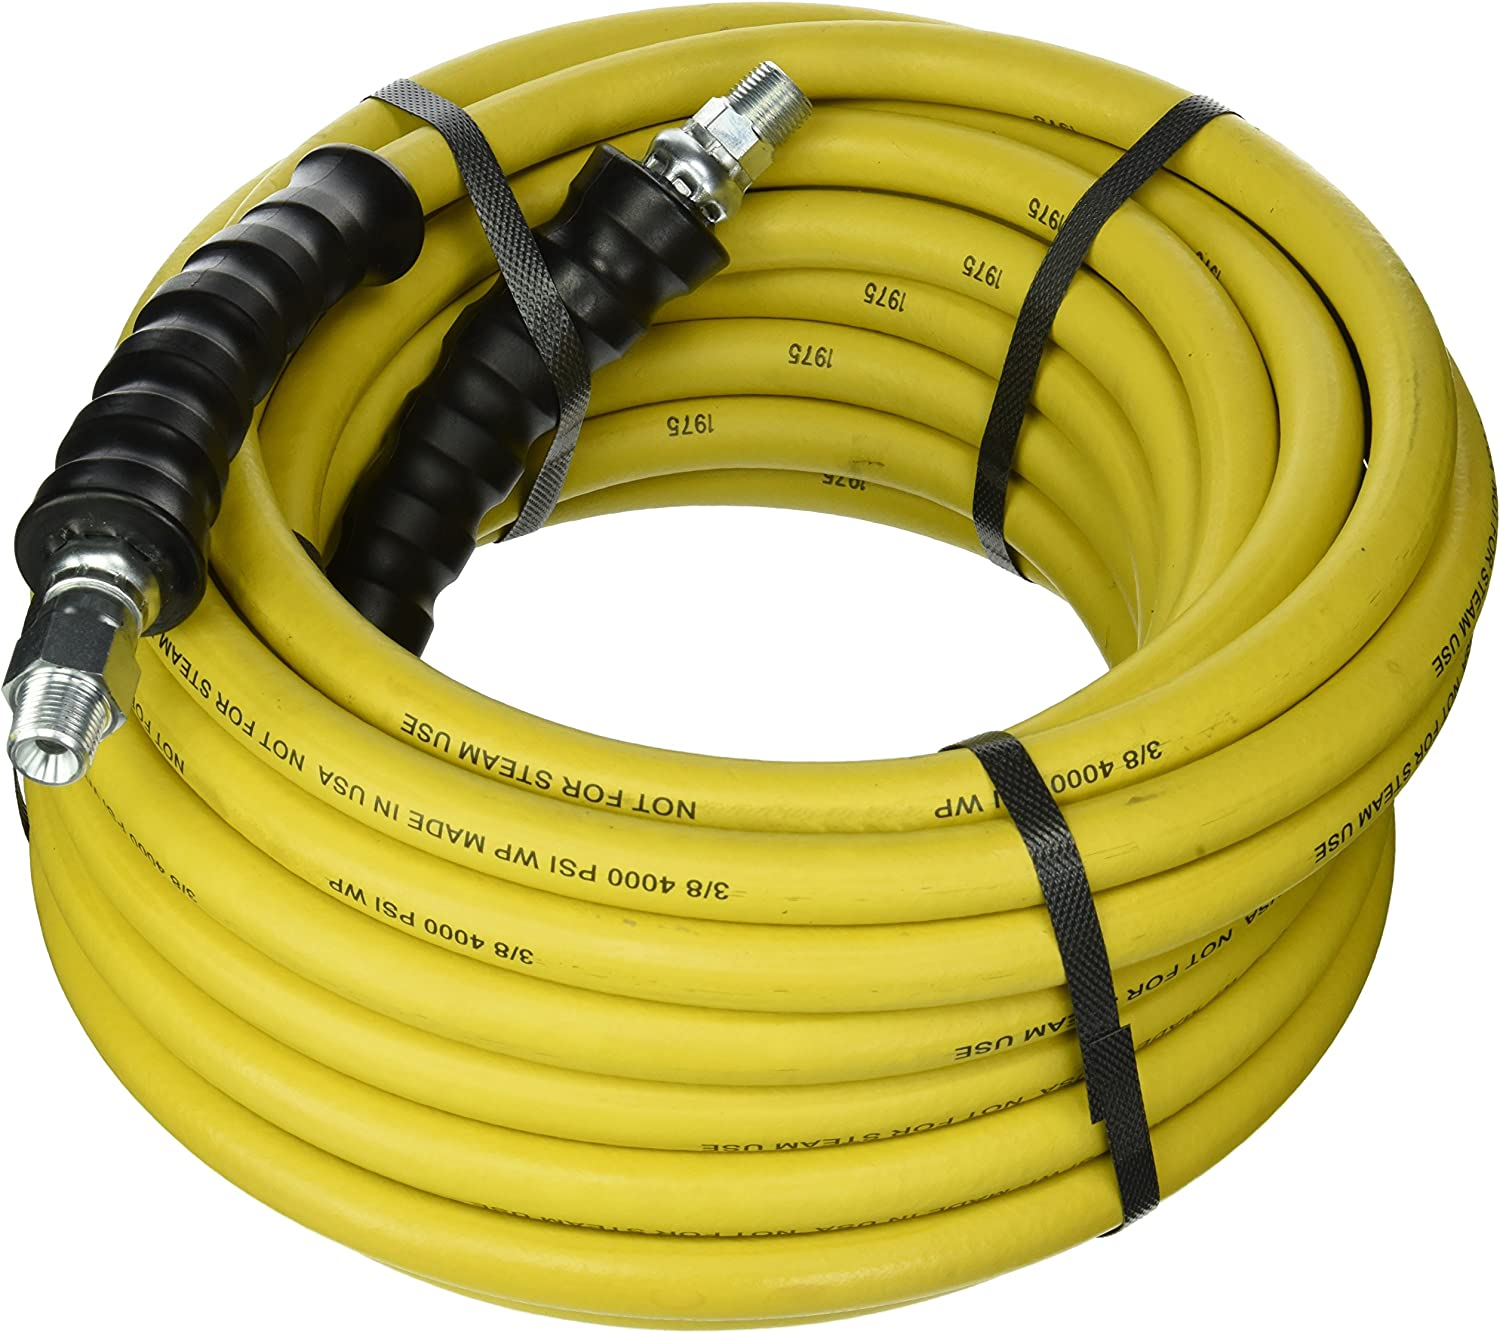 Pressure Washer Hose 50/' w// Couplers 4000 PSI BLACK Wire Braid EXTRAS INCLUDES